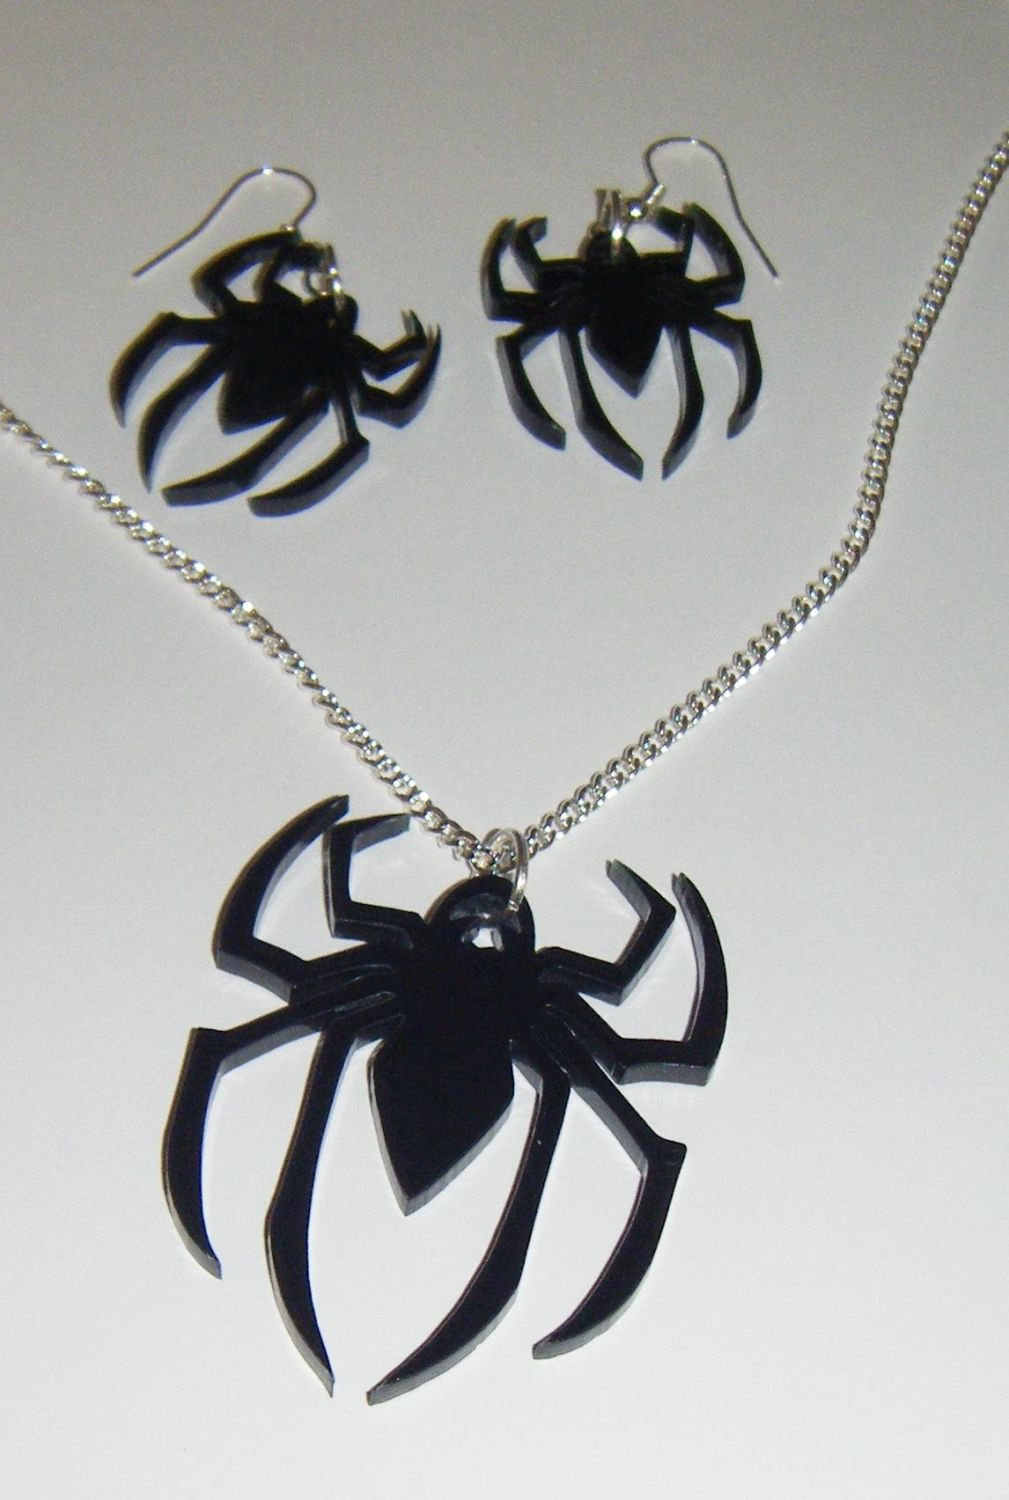 Spider Earring and Pendant set Necklace